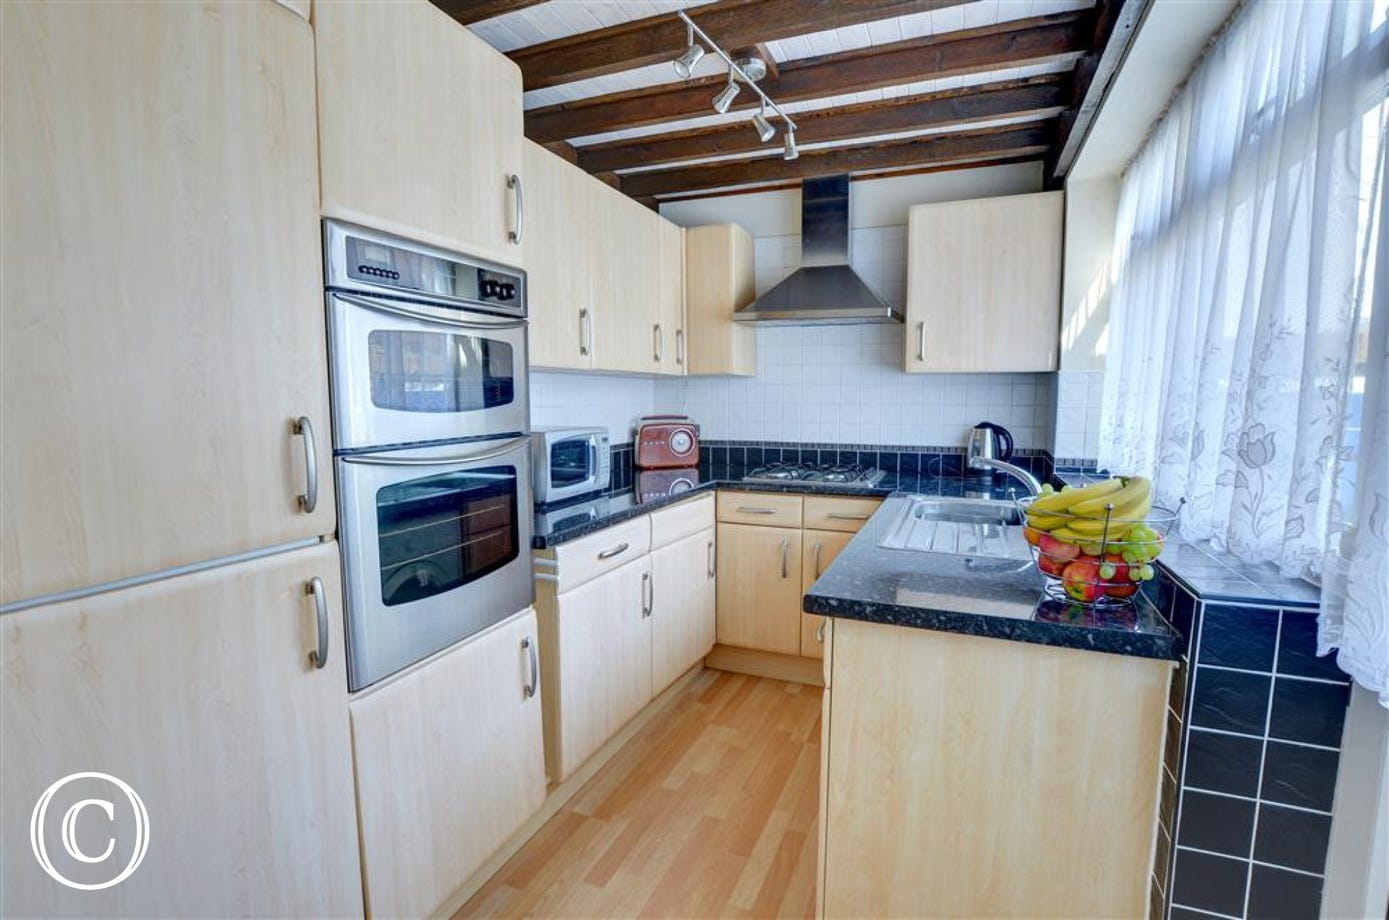 Kitchen has high quality units and appliances.